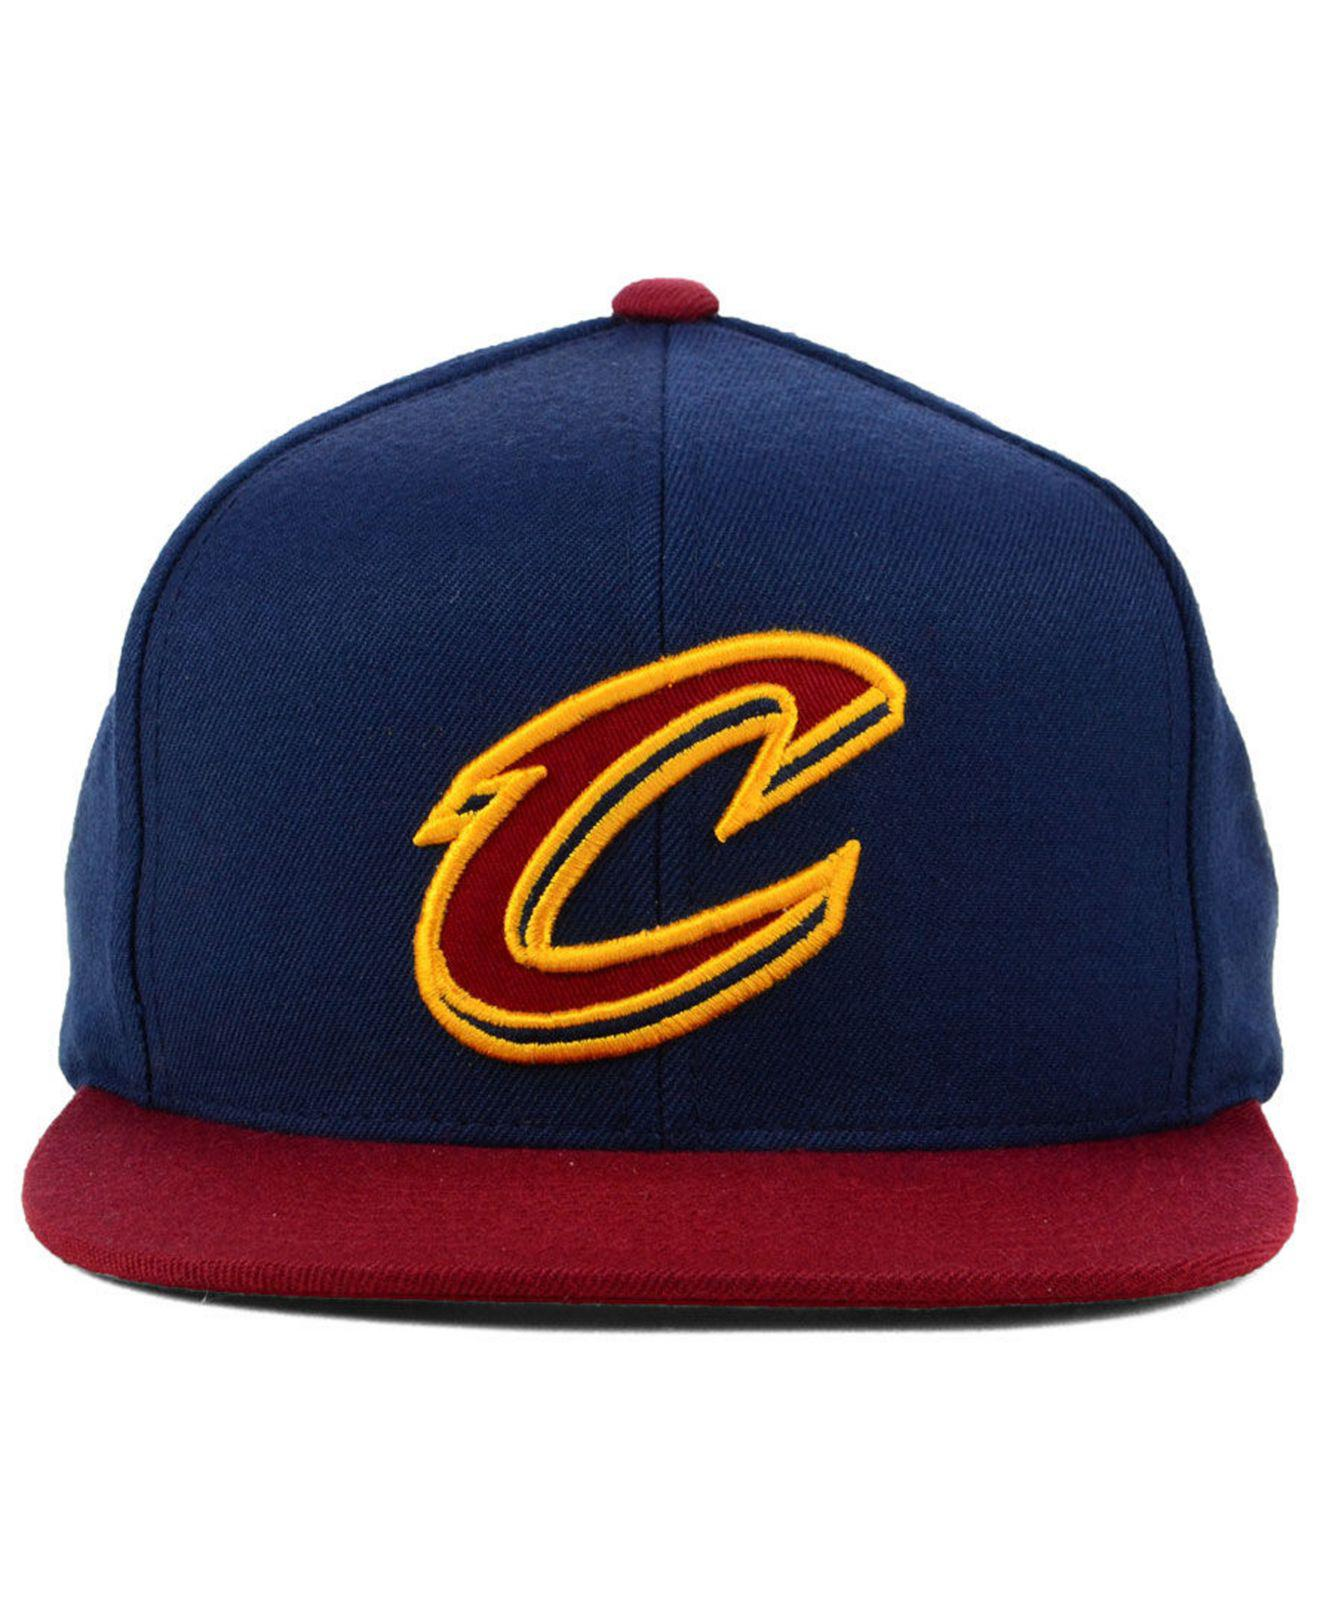 a740d8f6dcc142 ... low price lyst mitchell ness cleveland cavaliers curved mesh snapback  in blue for men d35f2 50c83